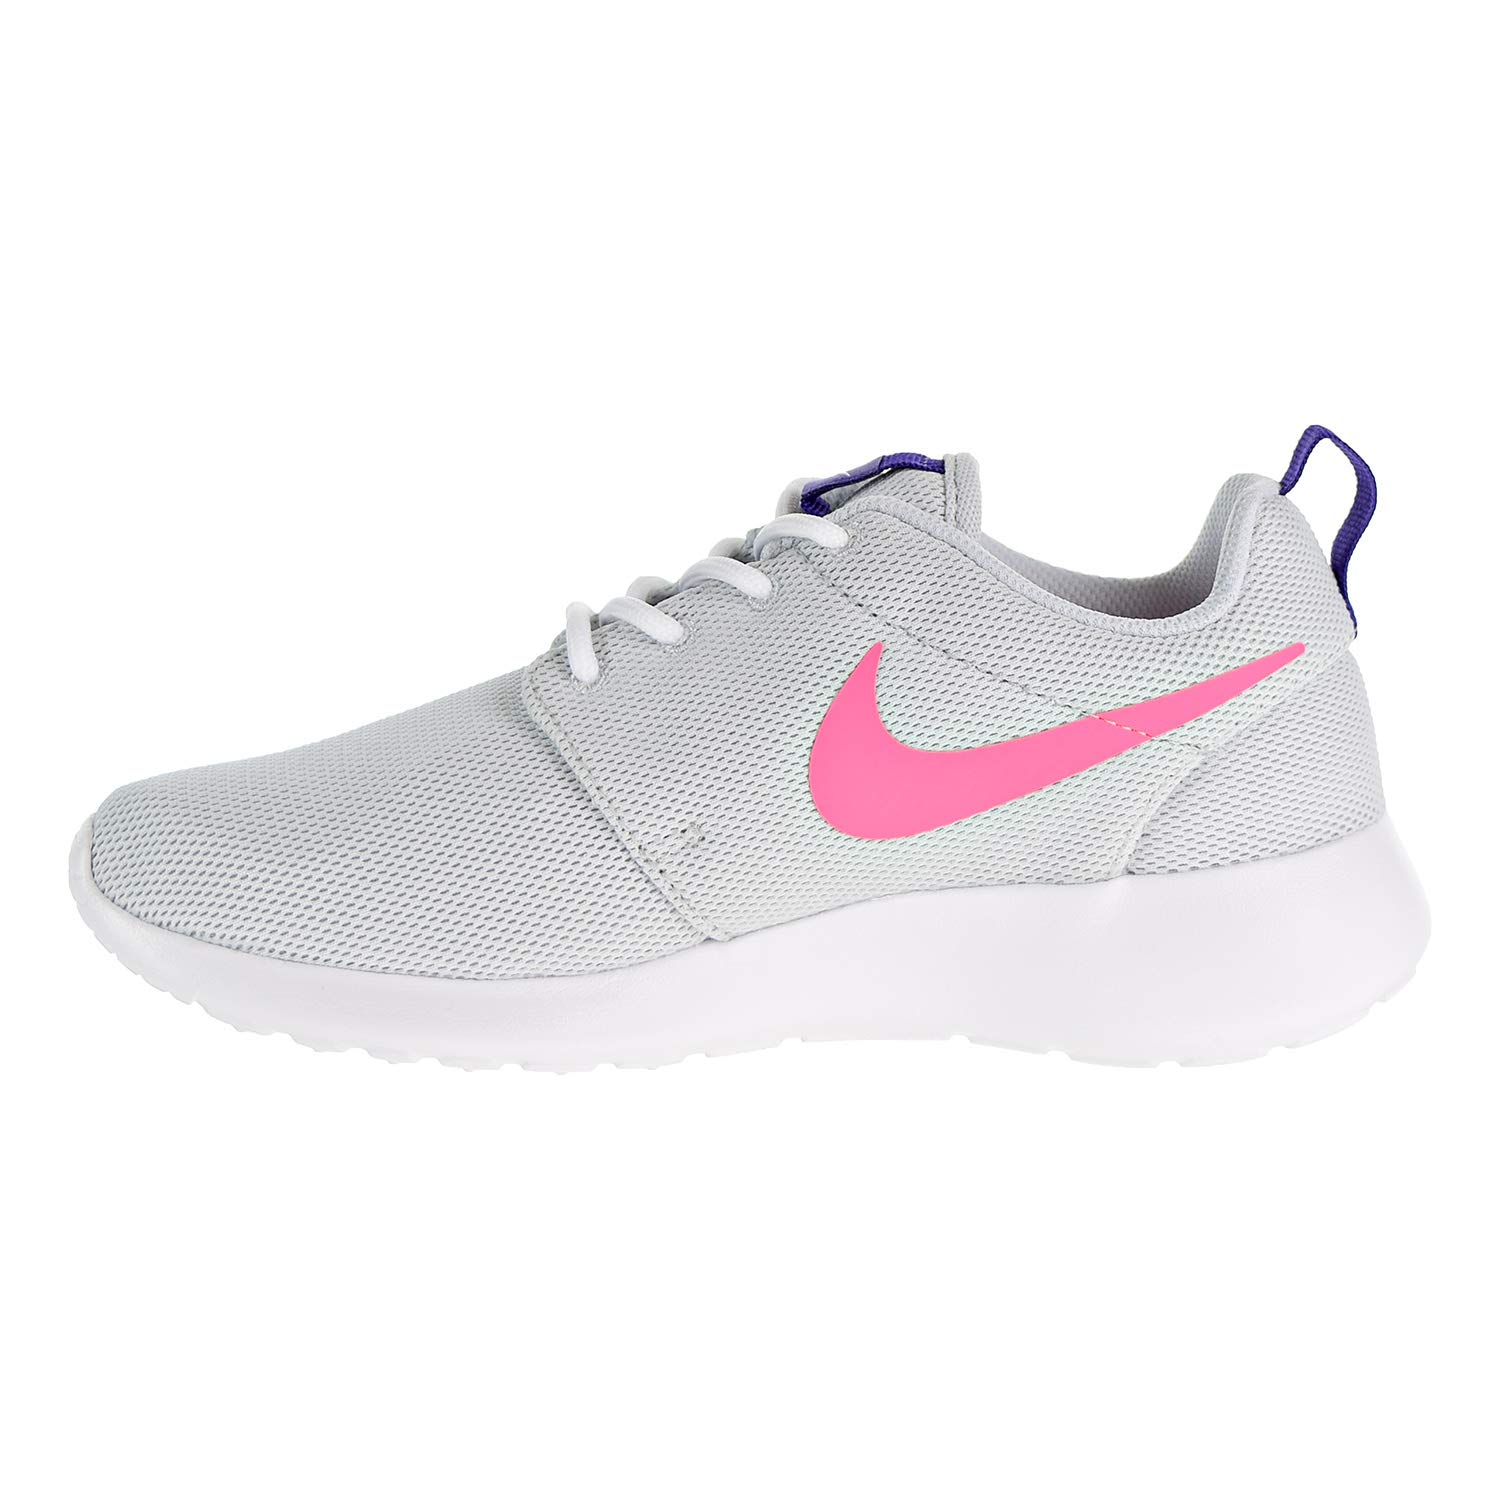 super popular 51741 26494 Amazon.com   Nike Women s Roshe One Trainers   Road Running